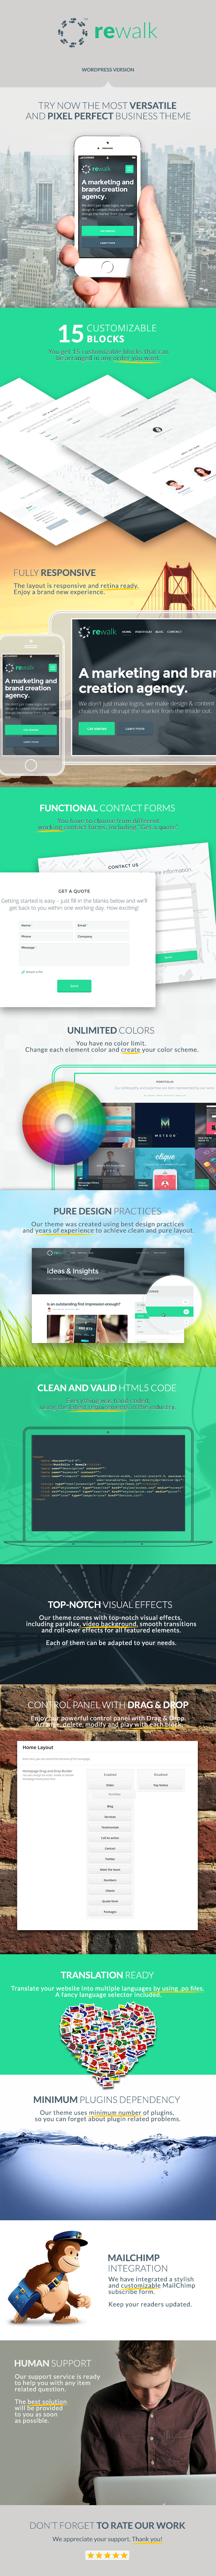 ReWalk - Business WordPress Theme - 6